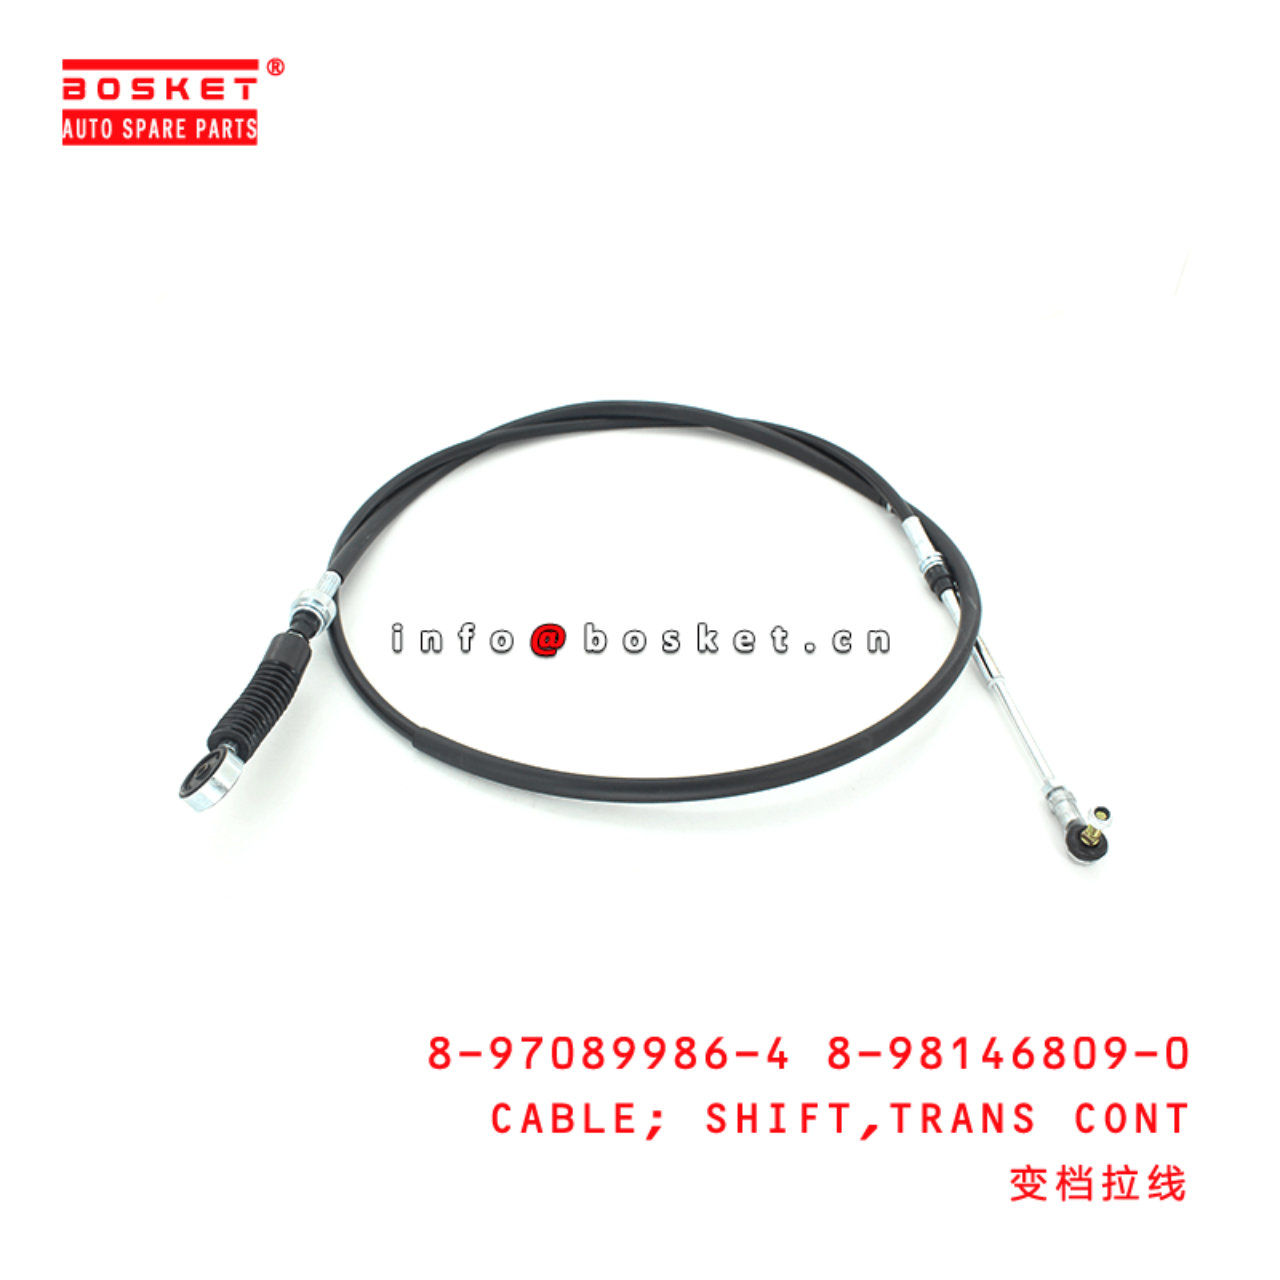 8-97089986-4 8-98146809-0 Transmission Control Shift Cable 8970899864 8981468090 Suitable for ISUZU